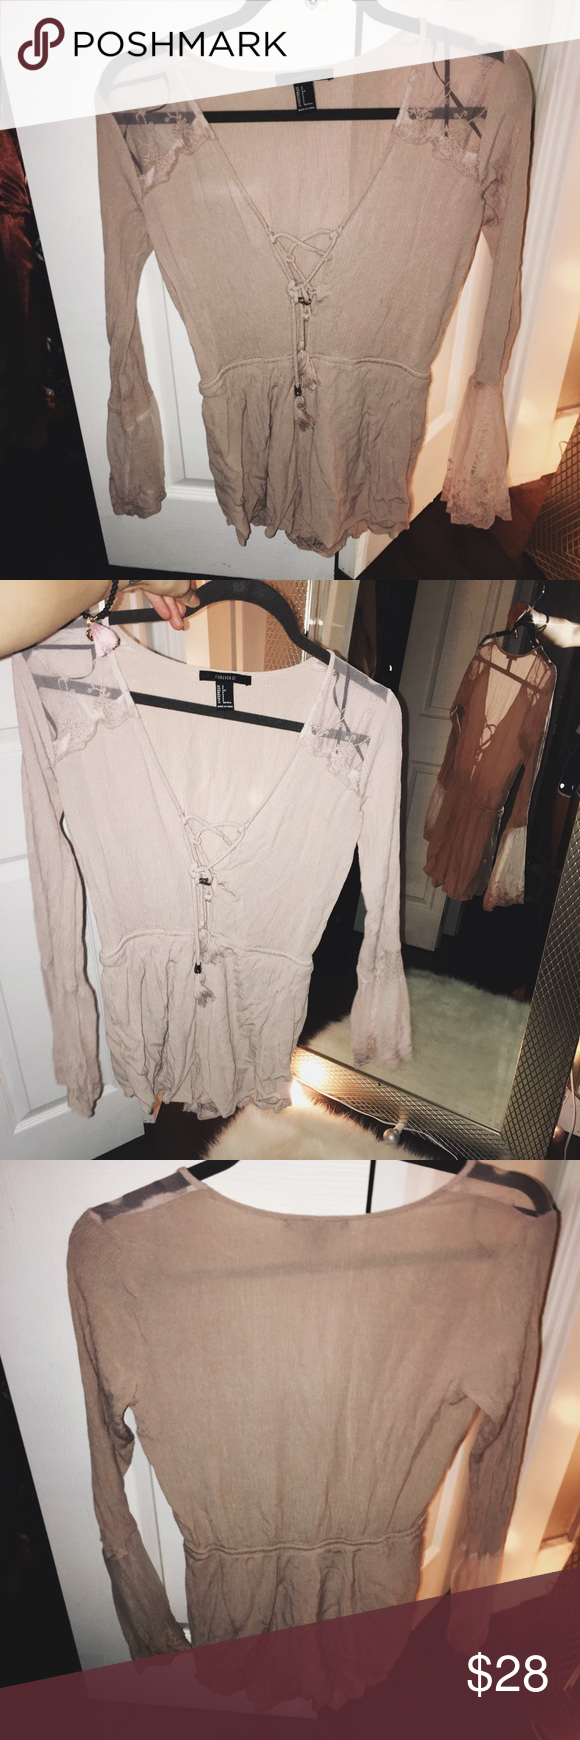 Sheer nude pink romper No flaws. Super cute. Sheer accents on sleeve and shoulder areas. Forever 21 Other